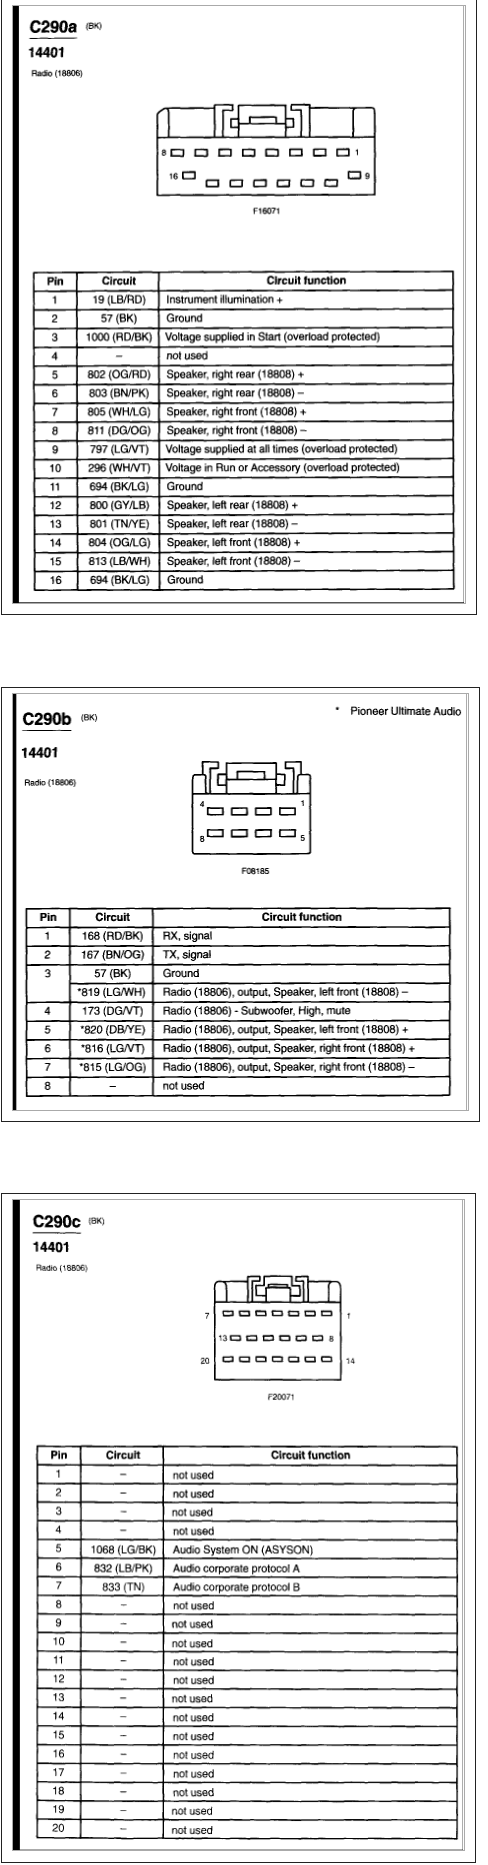 dd62867c-9435-4148-989c-0ce3ff115fe9_ford Pioneer Fh X Bs Wiring Harness Diagram on pioneer dvd cd, pioneer deh-x8500bs, pioneer fh-x700bt, pioneer avh-x2700bs,